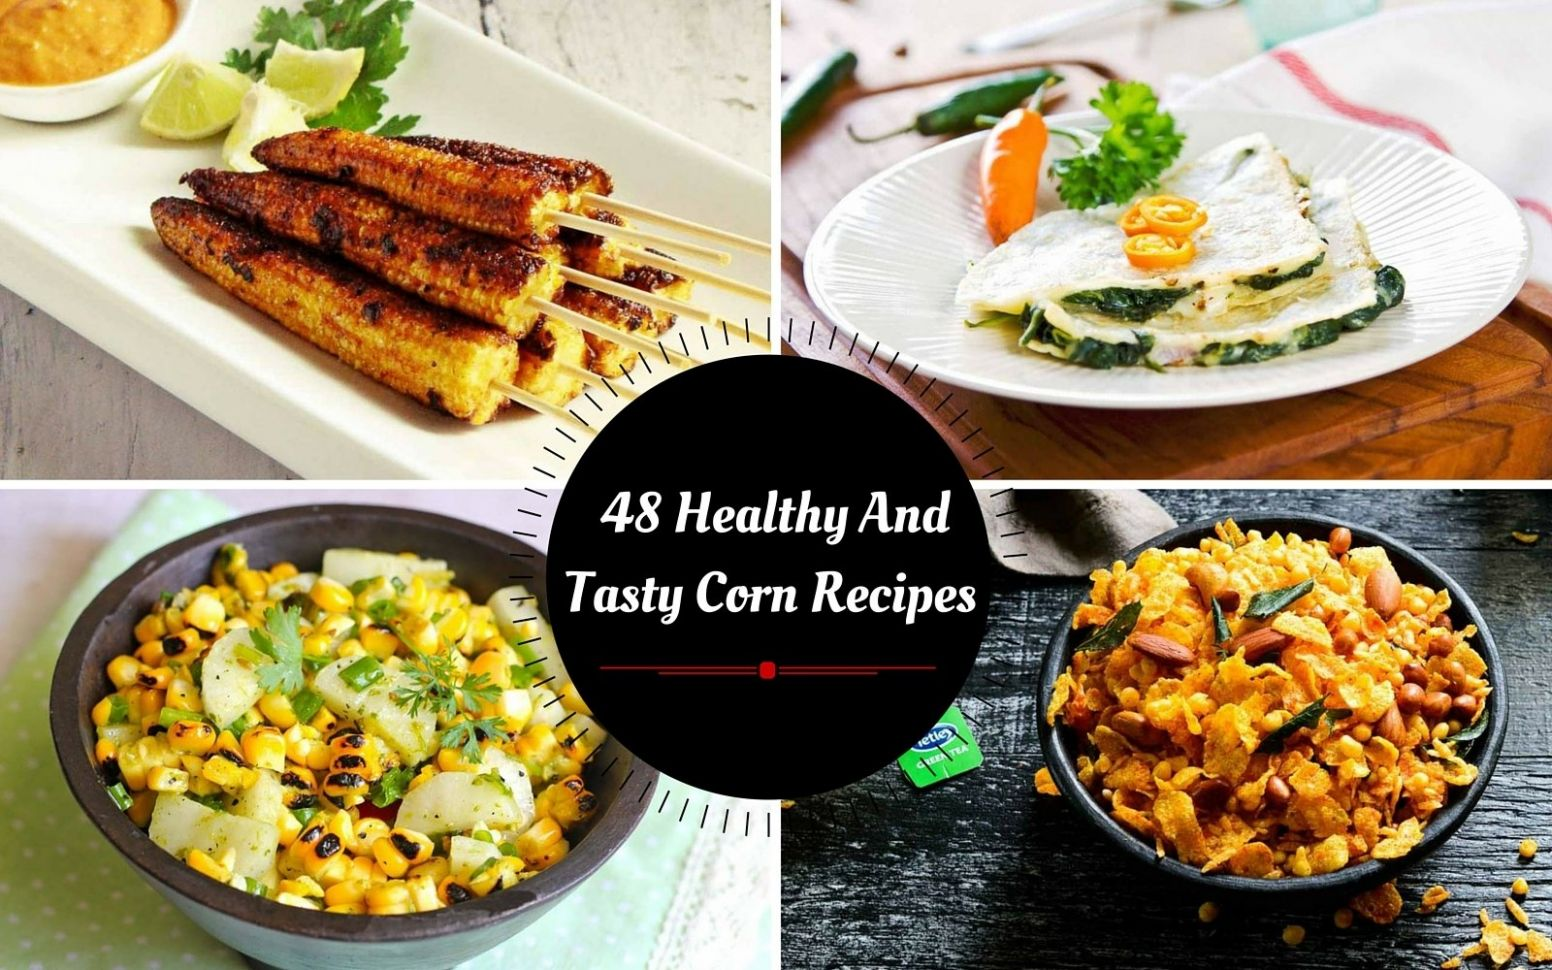 11 Healthy And Tasty Corn Recipes To Try At Your Home by Archana's ...